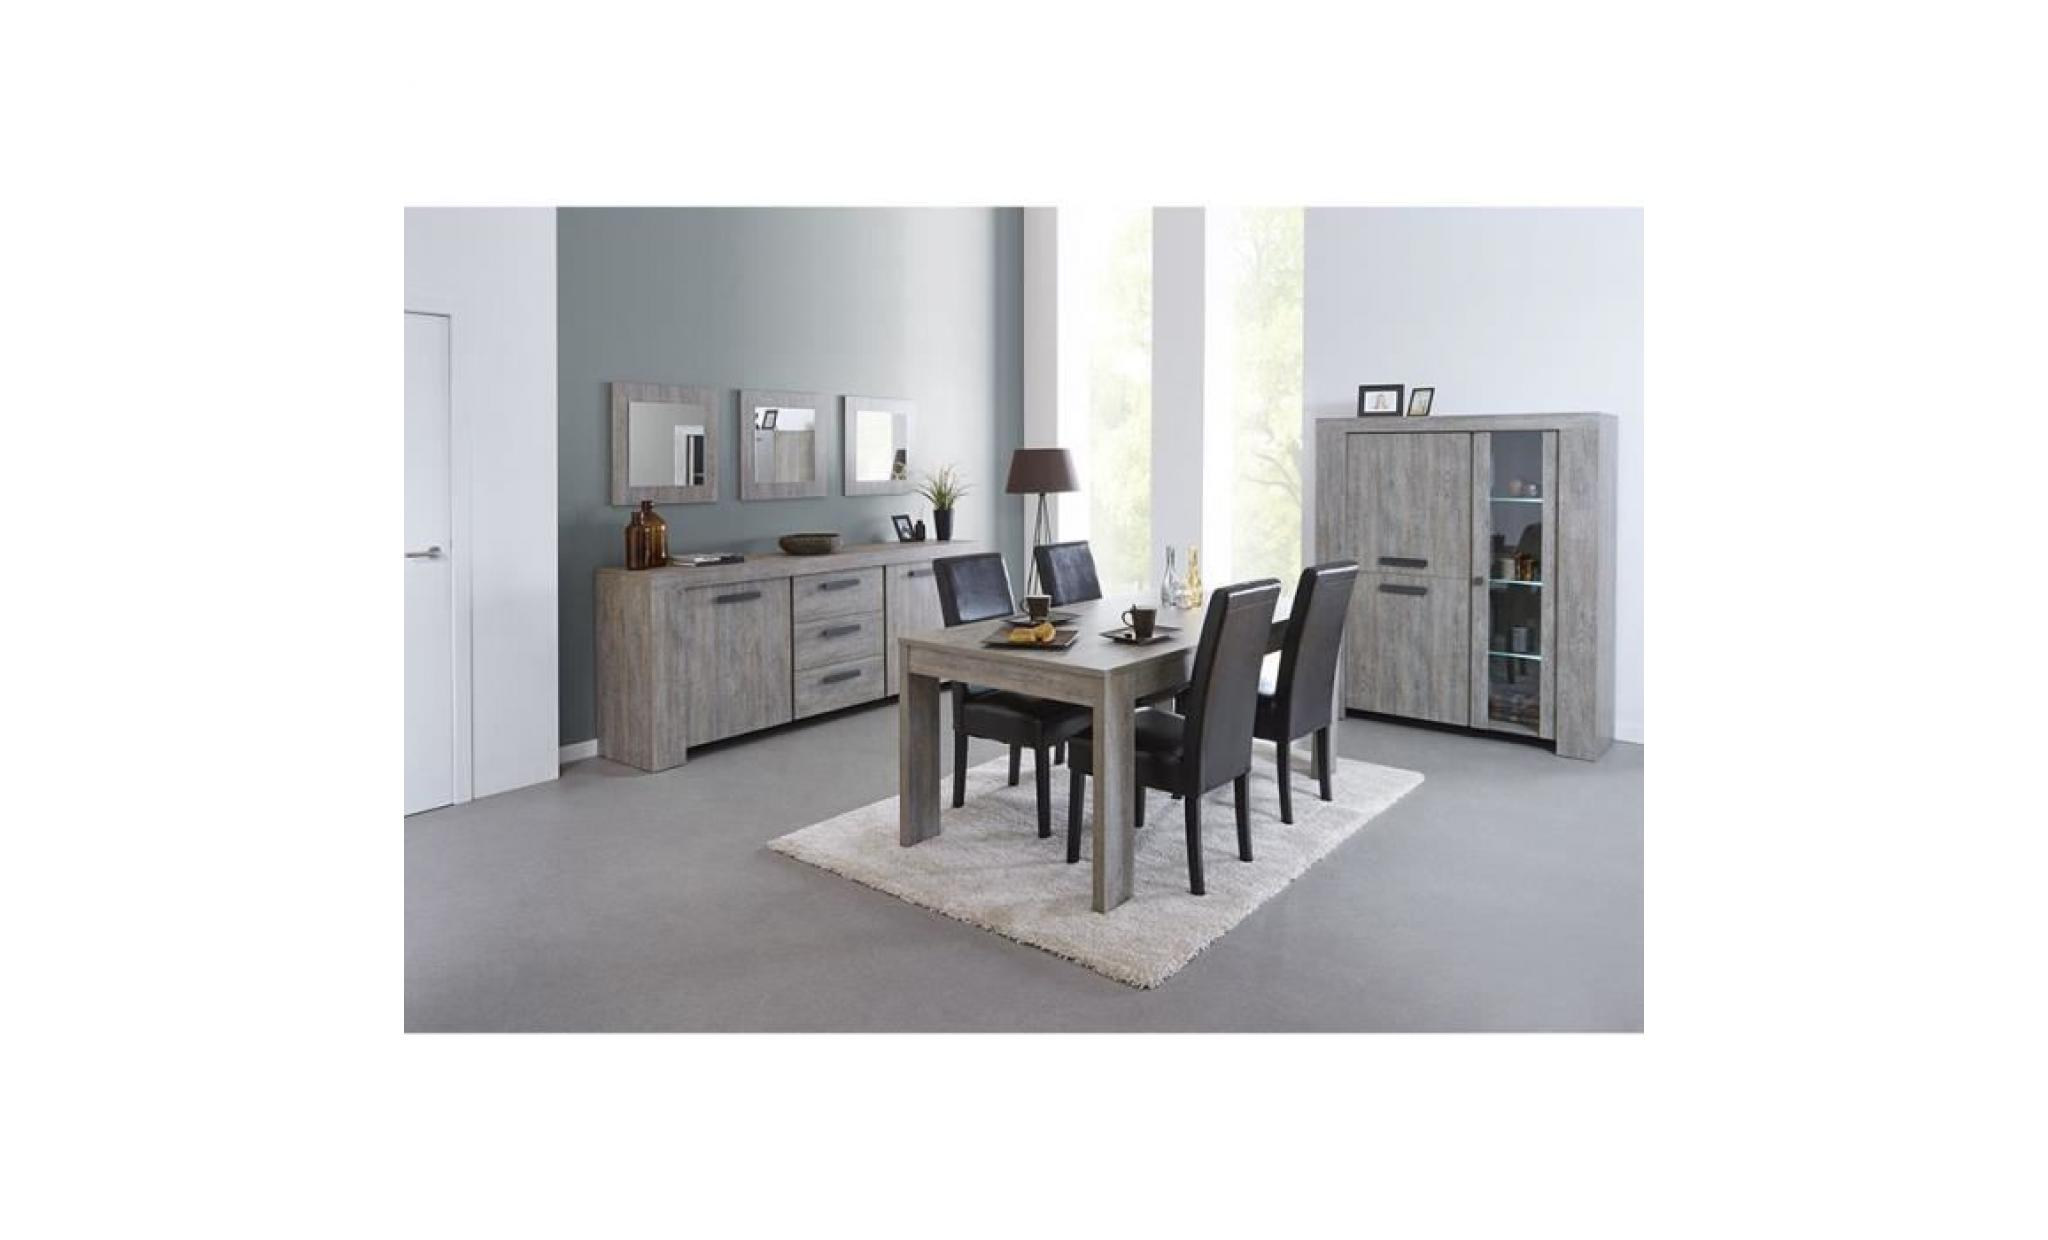 salle manger compl te couleur ch ne gris contemporaine azura table 160 cm achat vente. Black Bedroom Furniture Sets. Home Design Ideas